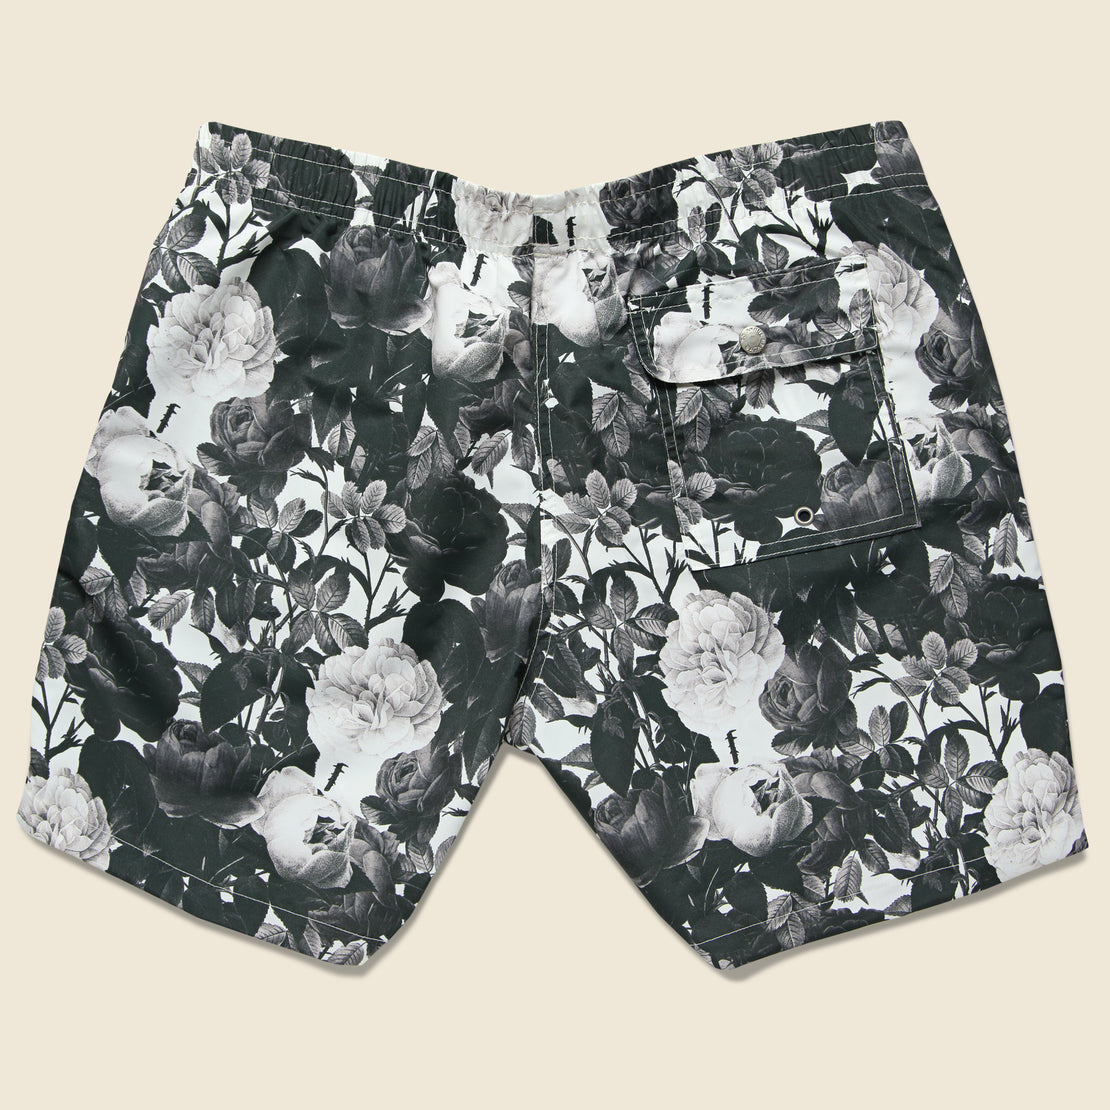 Black Roses Swim Trunk -  Black/White